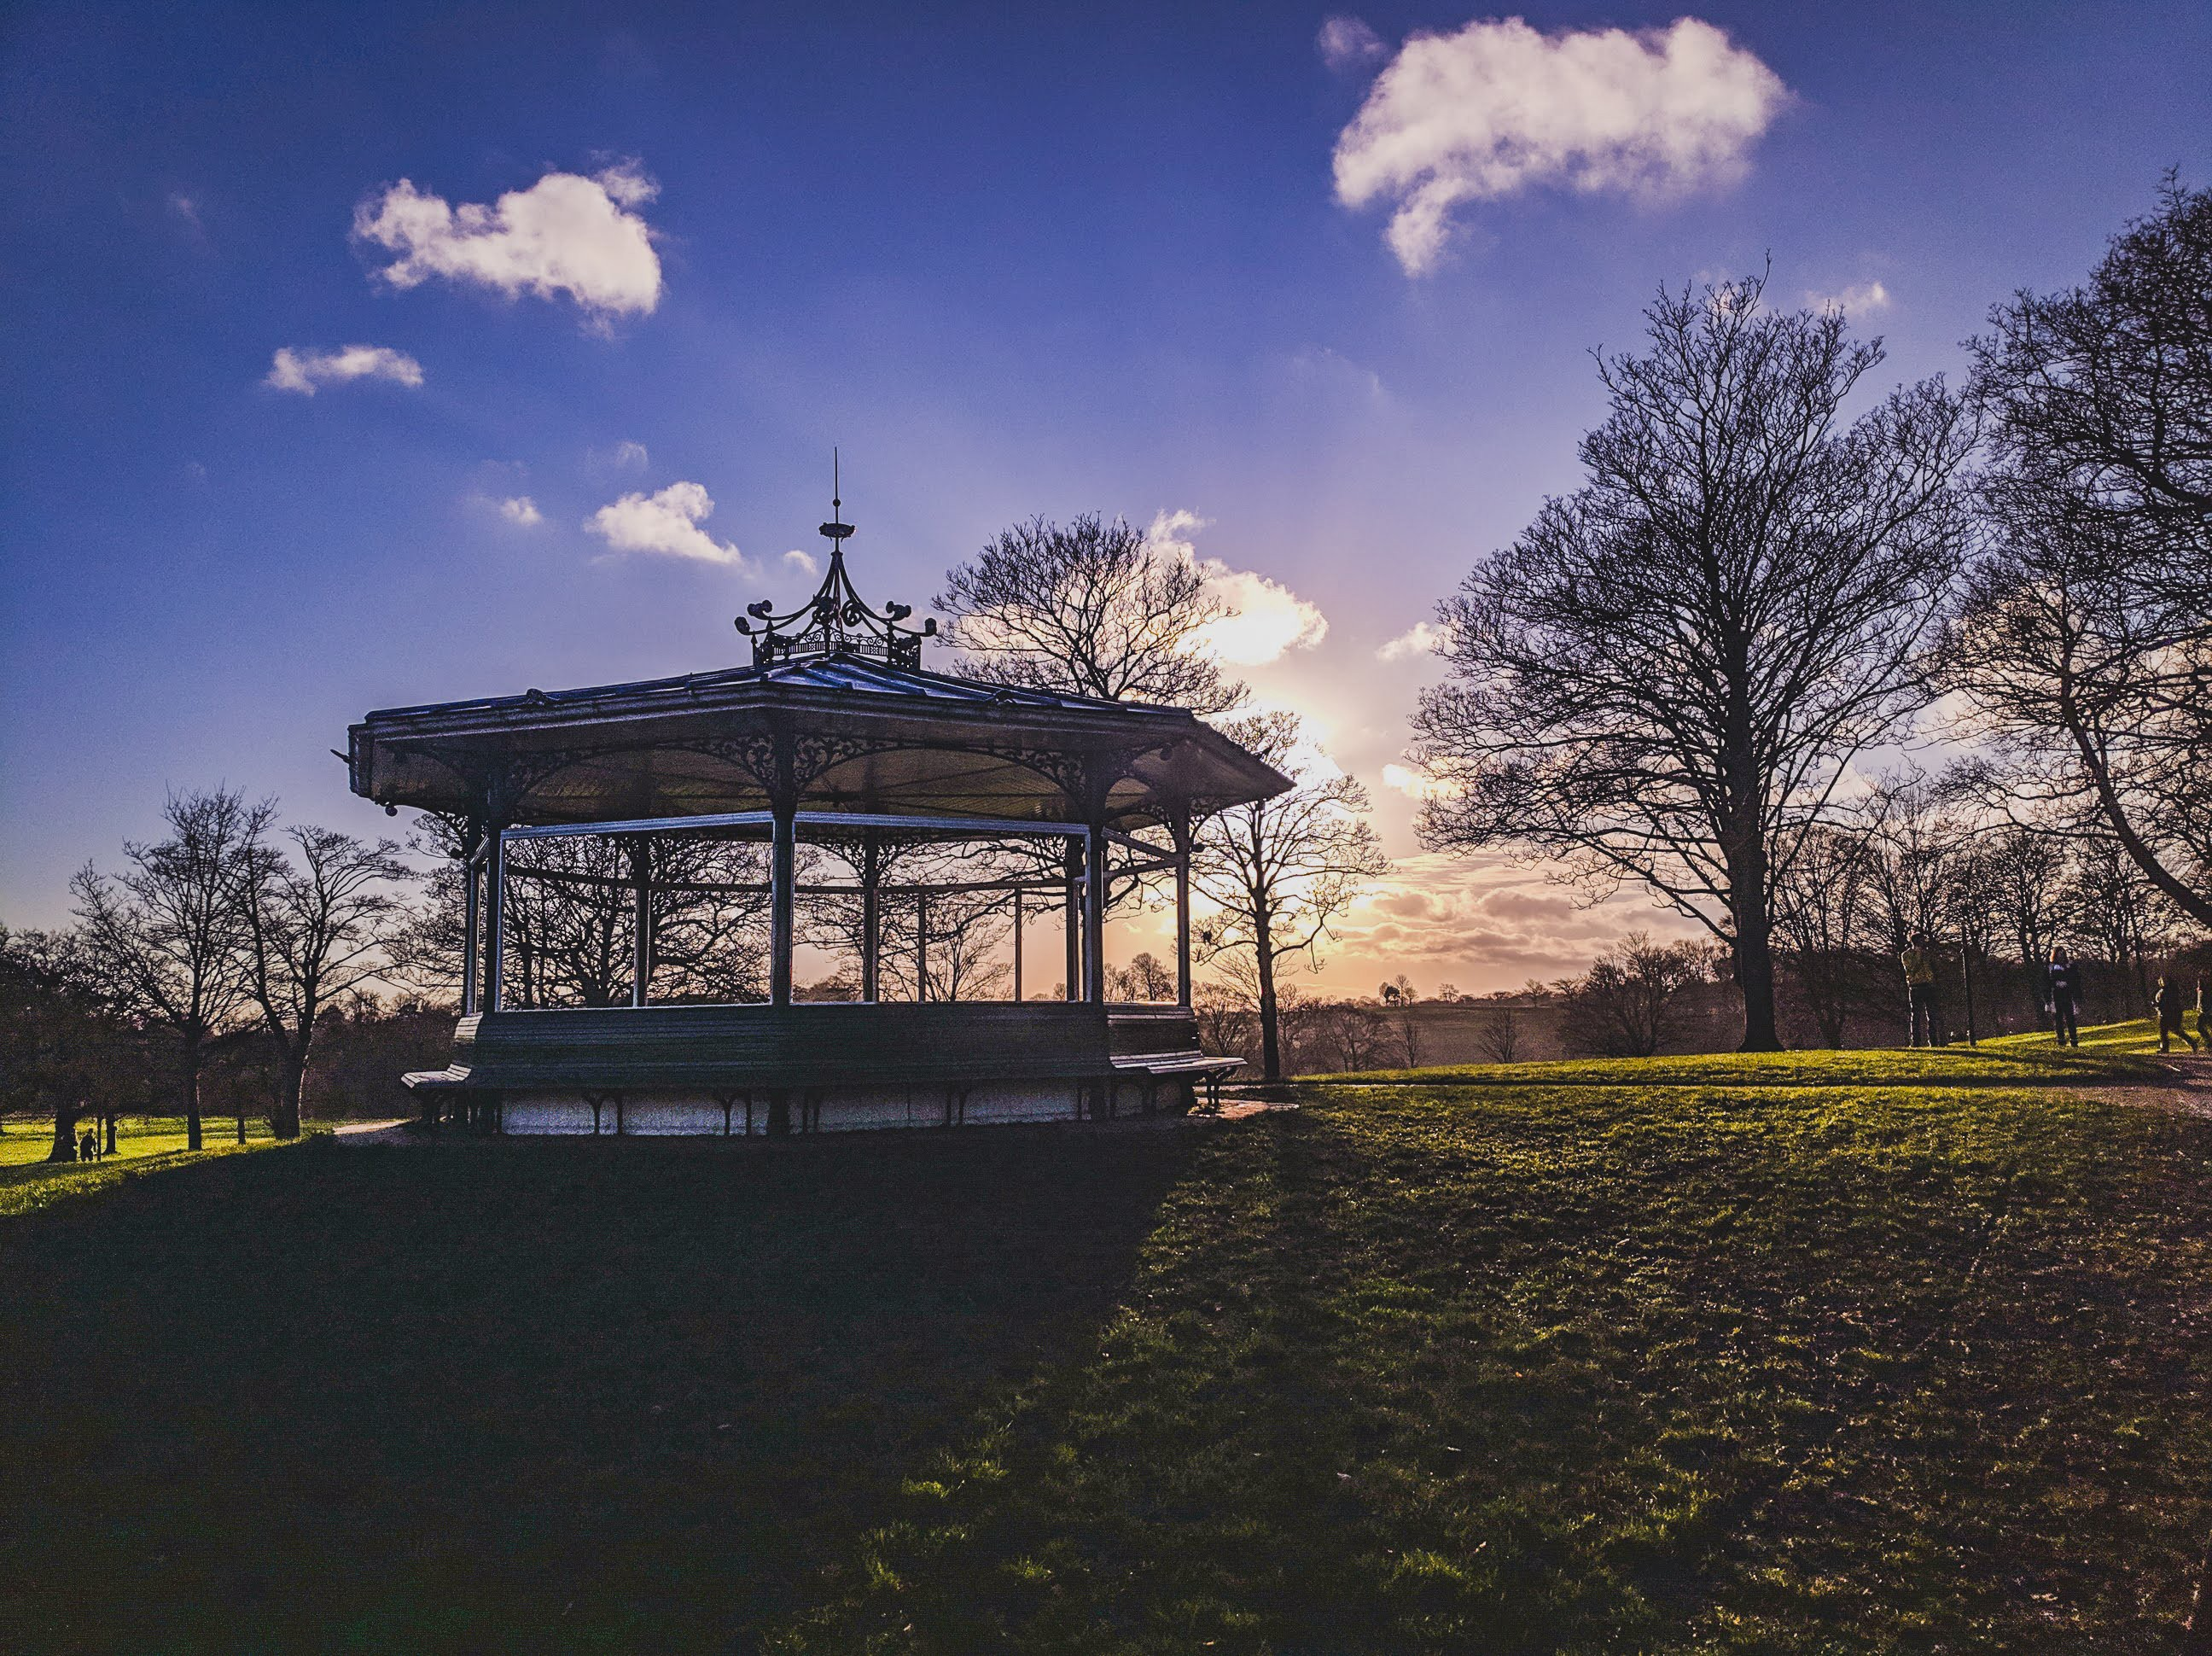 An empty bandstand is silhouetted against blue skies and winter trees on a sunny day in the park